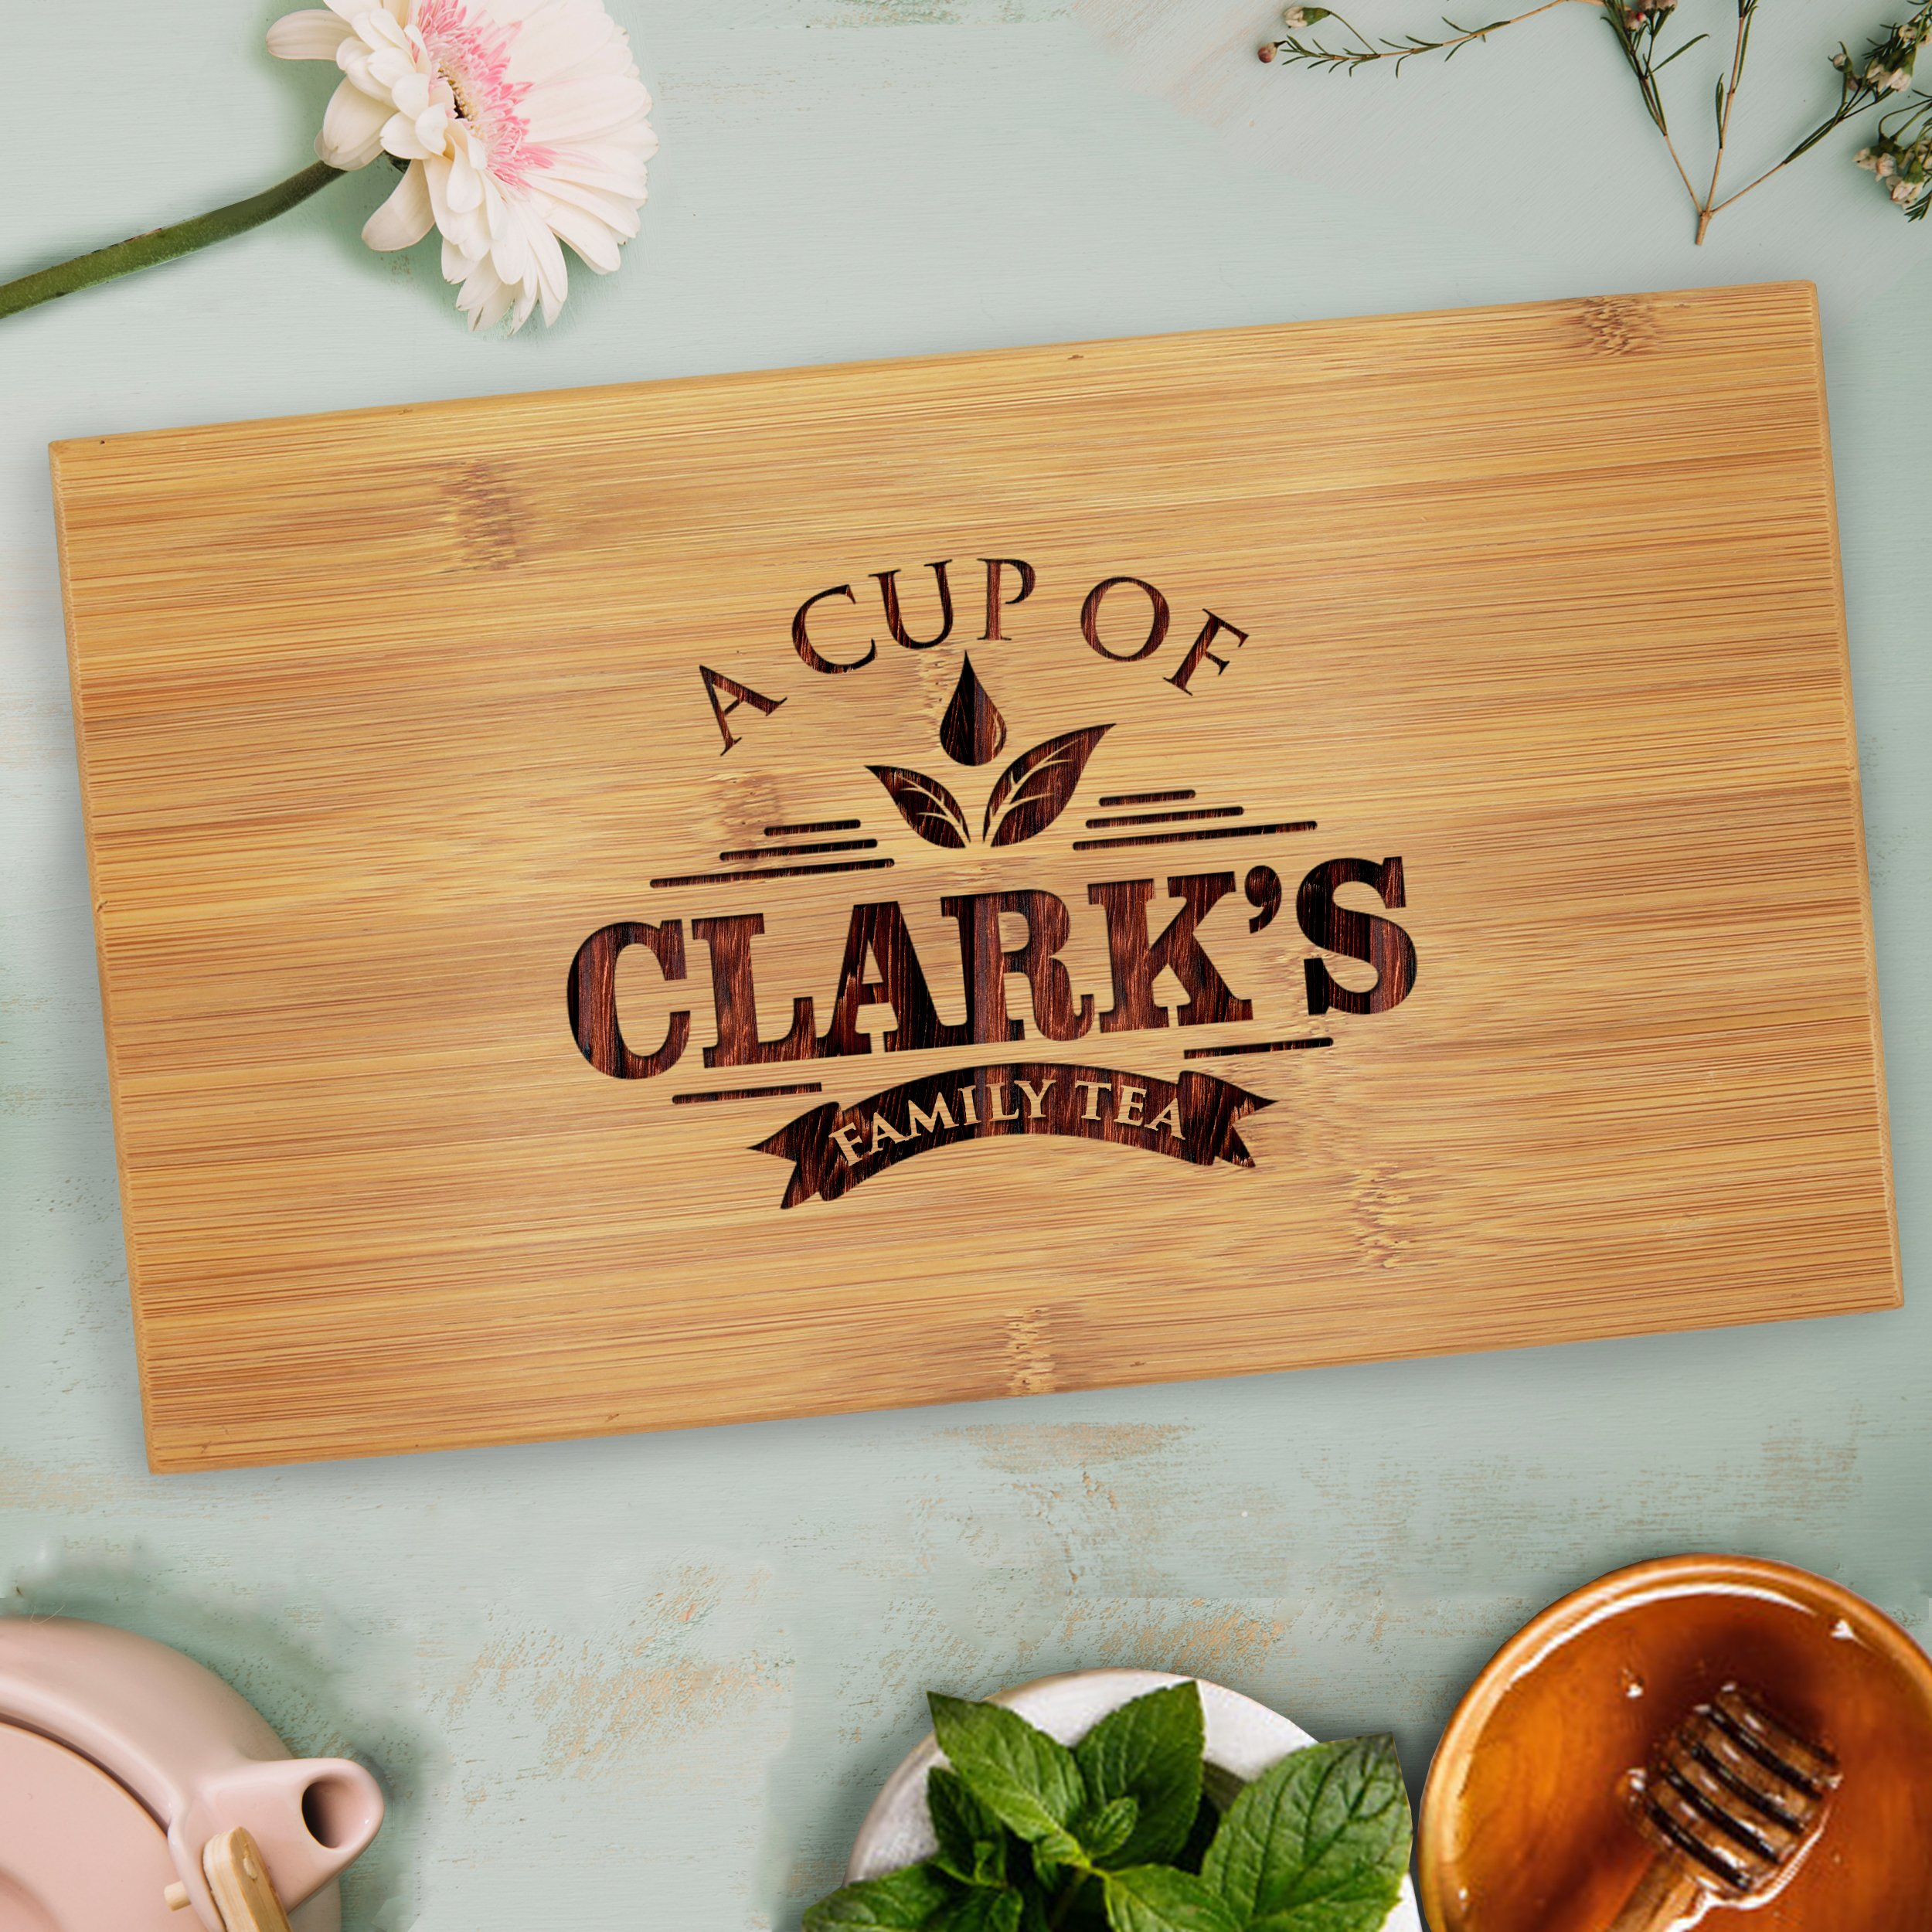 Custom Personalized Wood Tea Box Caddy Organizer - Engraved Bamboo Tea Storage Holder - Monogrammed for Free by The Wedding Party Store (Image #5)